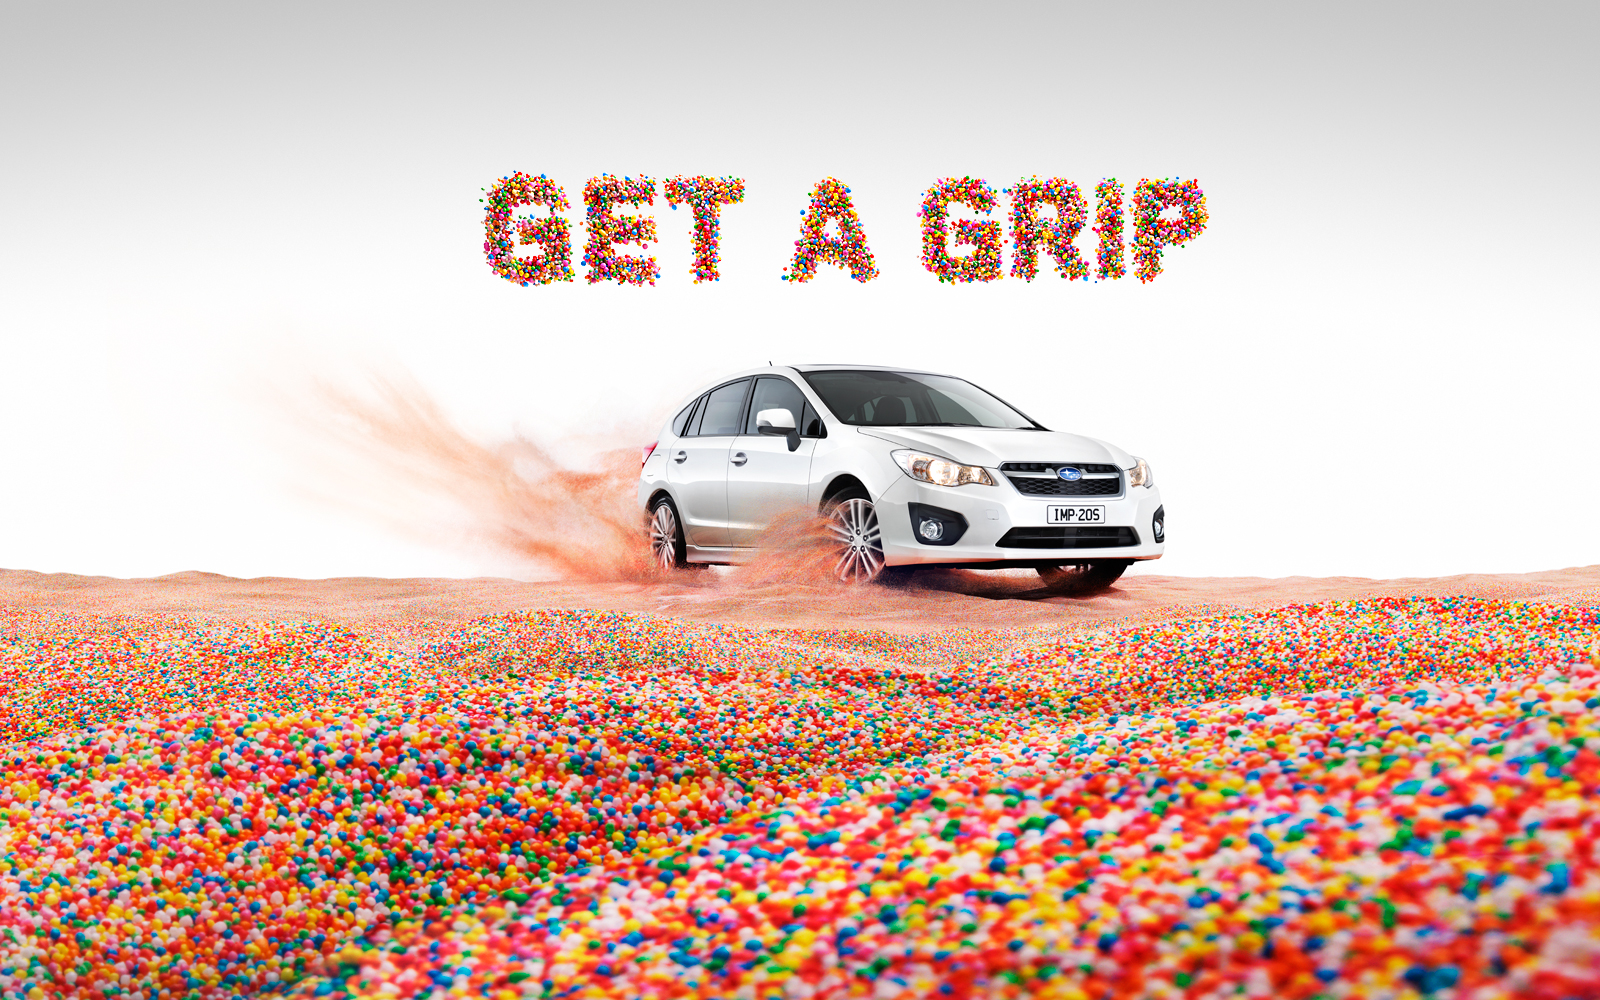 electric_art_impreza_sprinkles_sdw.jpg